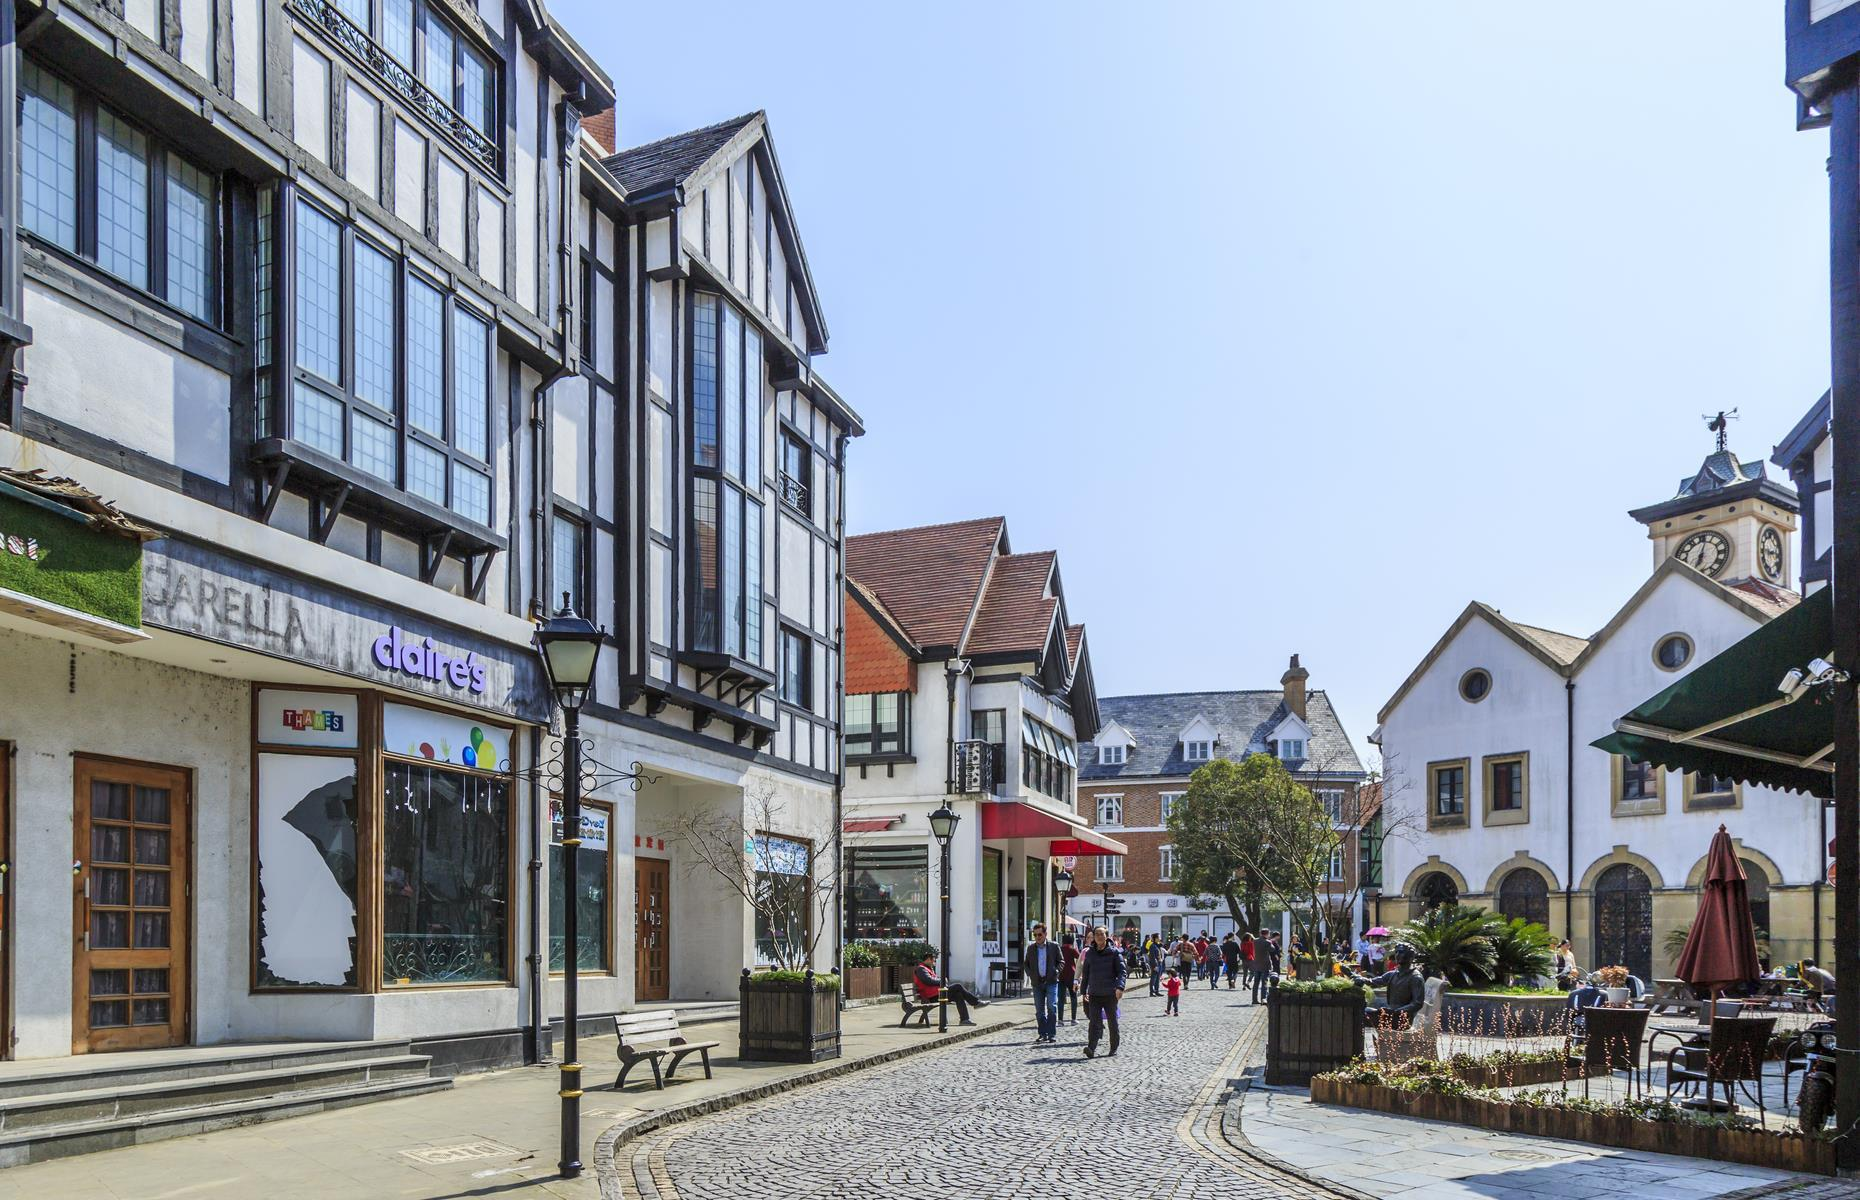 Slide 25 of 37: Complete with red telephone boxes, cobbled streets and even a Gothic church, Chinese Thames Town (pictured here) reportedly cost $330 millionto build. Today, economic problems mean it's largely deserted although it's a popular location for newlyweds wanting unusual wedding snaps.